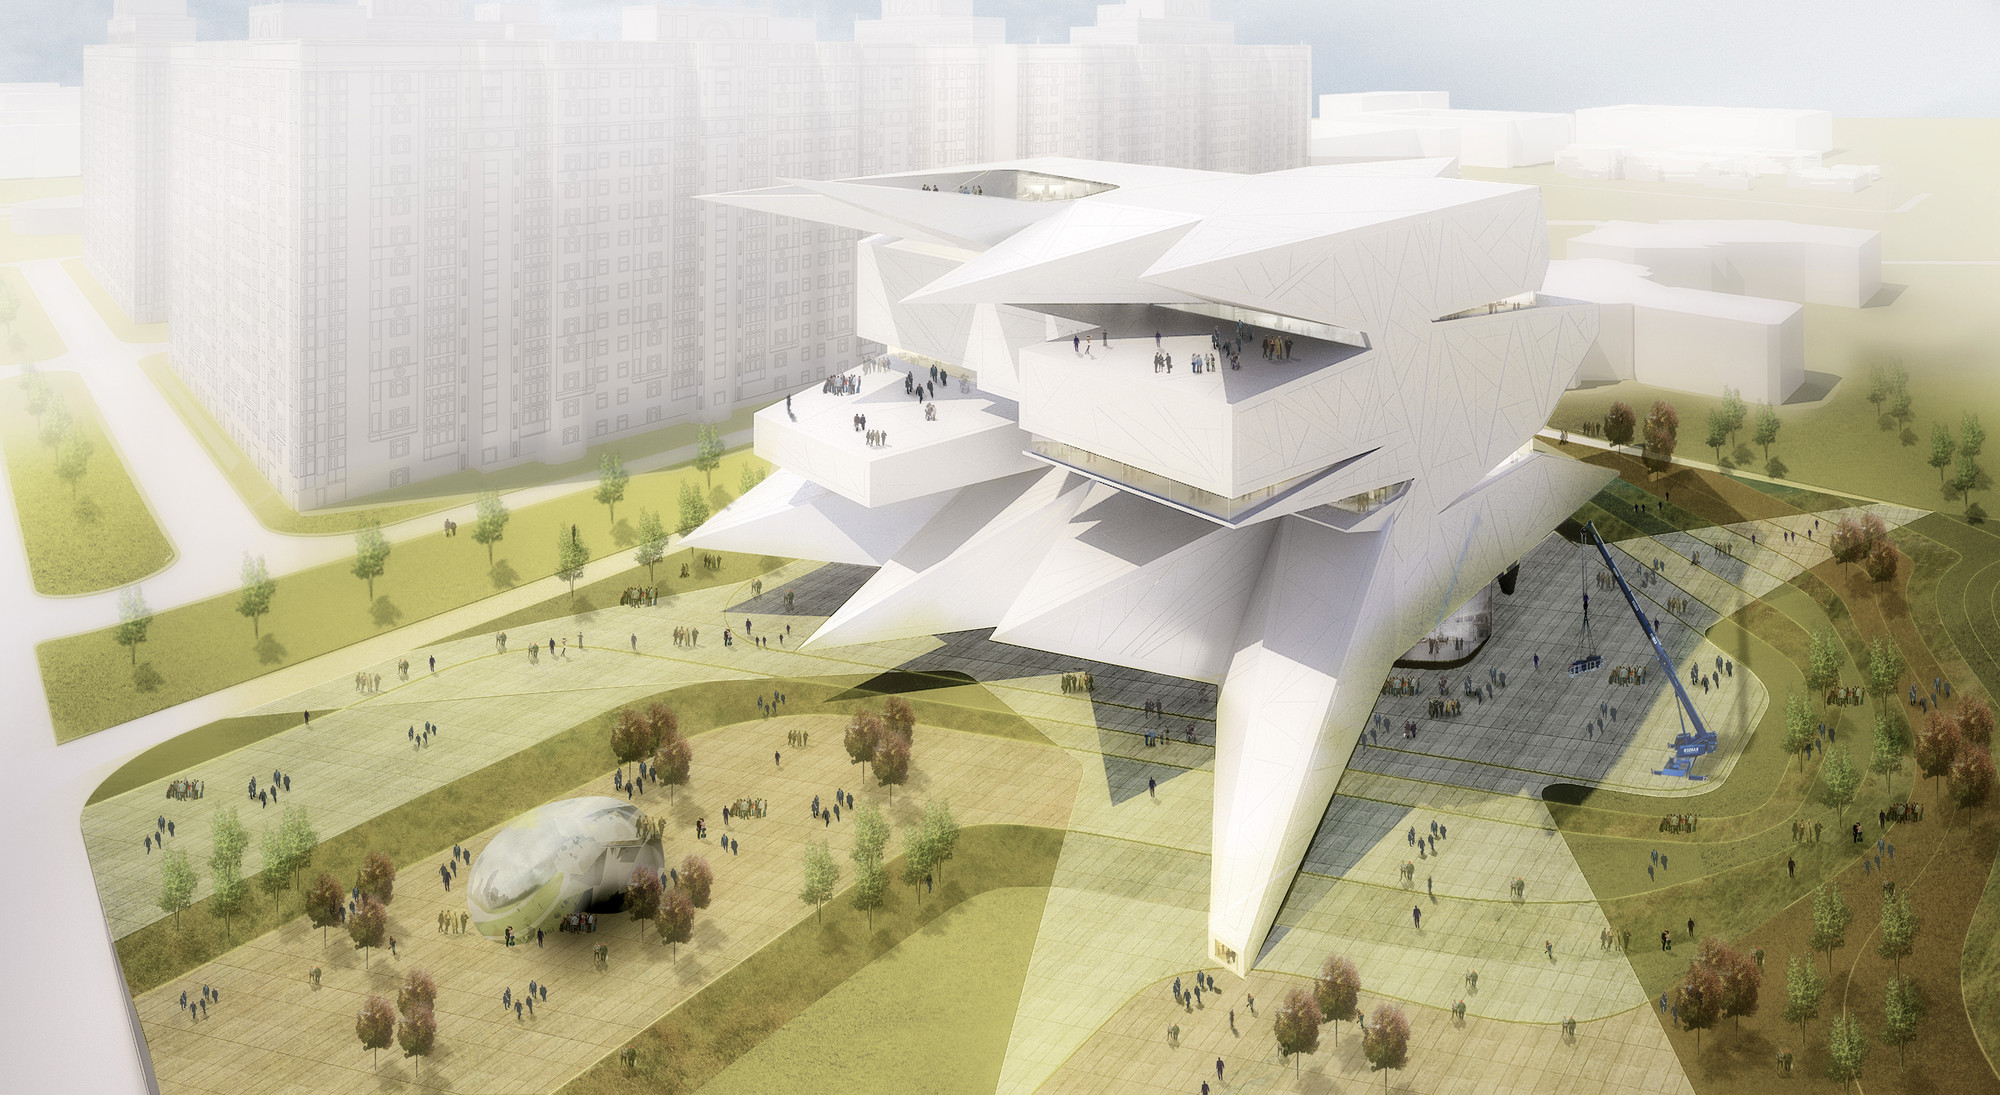 Moscow Polytechnic Museum - Education Center Proposal / Leeser Architecture, Courtesy of Leeser Architecture